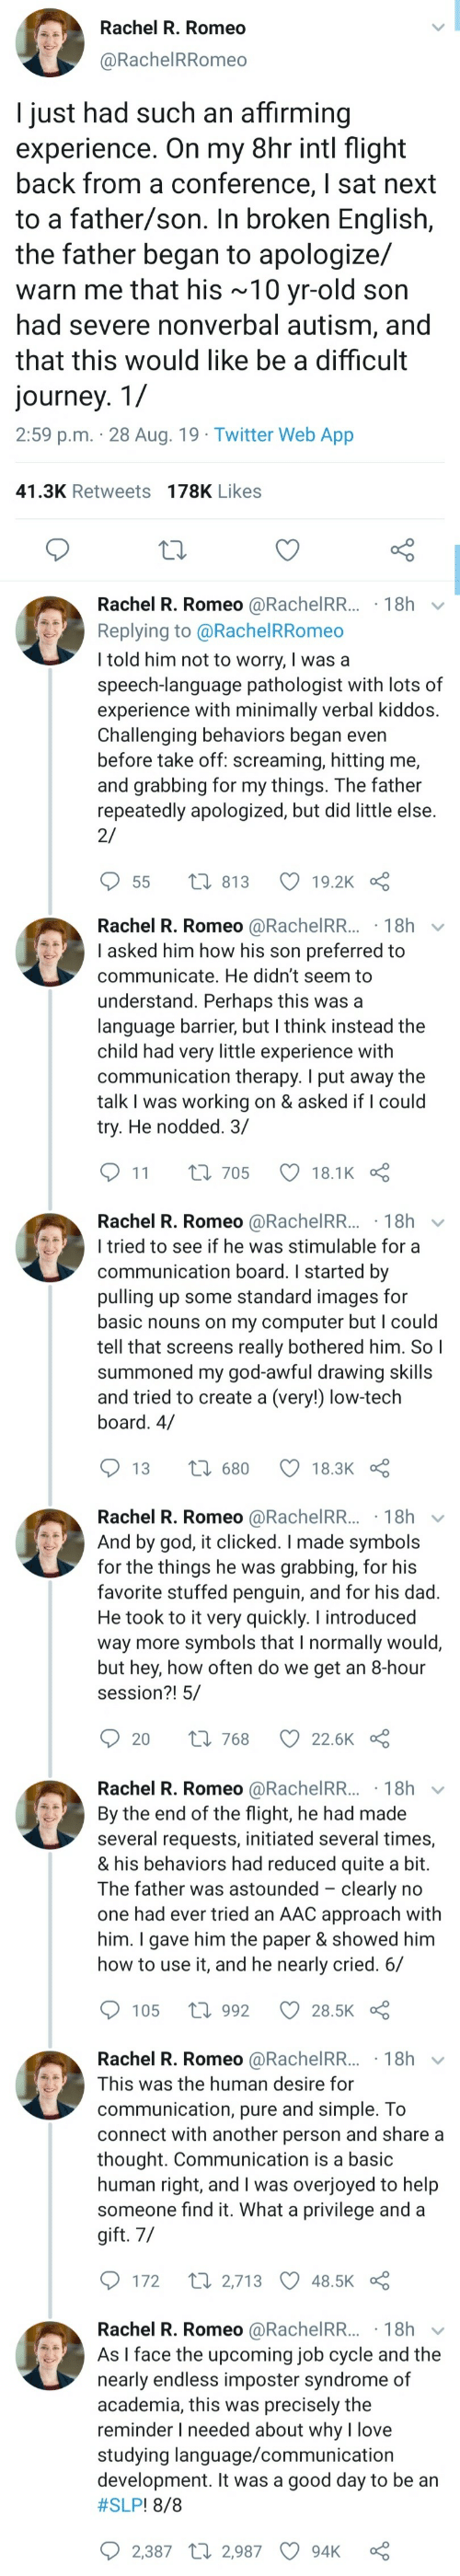 Told Him: Rachel R. Romeo  @RachelRRomeo  I just had such an affirming  experience. On my 8hr intl flight  back from a conference, I sat next  to a father/son. In broken English,  the father began to apologize/  warn me that his ~10 yr-old son  had severe nonverbal autism, and  that this would like be a difficult  journey. 1/  2:59 p.m. 28 Aug. 19 Twitter Web App  41.3K Retweets 178K Likes  Rachel R. Romeo @RachelRR... 18h  Replying to @Rachel RRomeo  I told him not to worry, I was a  speech-language pathologist with lots of  experience with minimally verbal kiddos.  Challenging behaviors began even  before take off: screaming, hitting me,  and grabbing for my things. The father  repeatedly apologized, but did little else  2/  t 813  19.2K  55   Rachel R. Romeo @RachelRR...18h  I asked him how his son preferred to  communicate. He didn't seem to  understand. Perhaps this was a  language barrier, but I think instead the  child had very little experience with  communication therapy. I put away the  talk I was working on & asked if I could  try. He nodded. 3/  11  L 705  18.1K  Rachel R. Romeo @RachelRR... 18h  I tried to see if he was stimulable for a  communication board. I started by  pulling up some standard images for  basic nouns on my computer but I could  tell that screens really bothered him. So I  summoned my god-awful drawing skills  and tried to create a (very!) low-tech  board. 4/  1680  13  18.3K  Rachel R. Romeo @RachelRR... 18h  And by god, it clicked. I made symbols  for the things he was  favorite stuffed penguin, and for his dad.  He took to it very quickly. I introduced  way more symbols that I normally would,  but hey, how often do we get an 8-hour  session?! 5/  grabbing, for his  Li 768  20  22.6K   Rachel R. Romeo @RachelRR... 18h  By the end of the flight, he had made  several requests, initiated several times,  & his behaviors had reduced quite a bit.  The father was astounded clearly no  one had ever tried an AAC approach with  him. I gave him the paper & showed him  how to use it, and he nearly cried. 6/  1992  105  28.5K  Rachel R. Romeo @RachelRR... 18h  This was the human desire for  communication, pure and simple. To  connect with another person and share a  thought. Communication is a basic  human right, and I was overjoyed to help  someone find it. What a privilege and a  gift. 7/  t 2,713 48.5K  172  Rachel R. Romeo @RachelRR... 18h  As I face the upcoming job cycle and the  nearly endless imposter syndrome of  academia, this was precisely the  reminder I needed about why l love  studying language/communication  development. It was a good day to be an  #SLP ! 8/8  2,387 2,987  94K